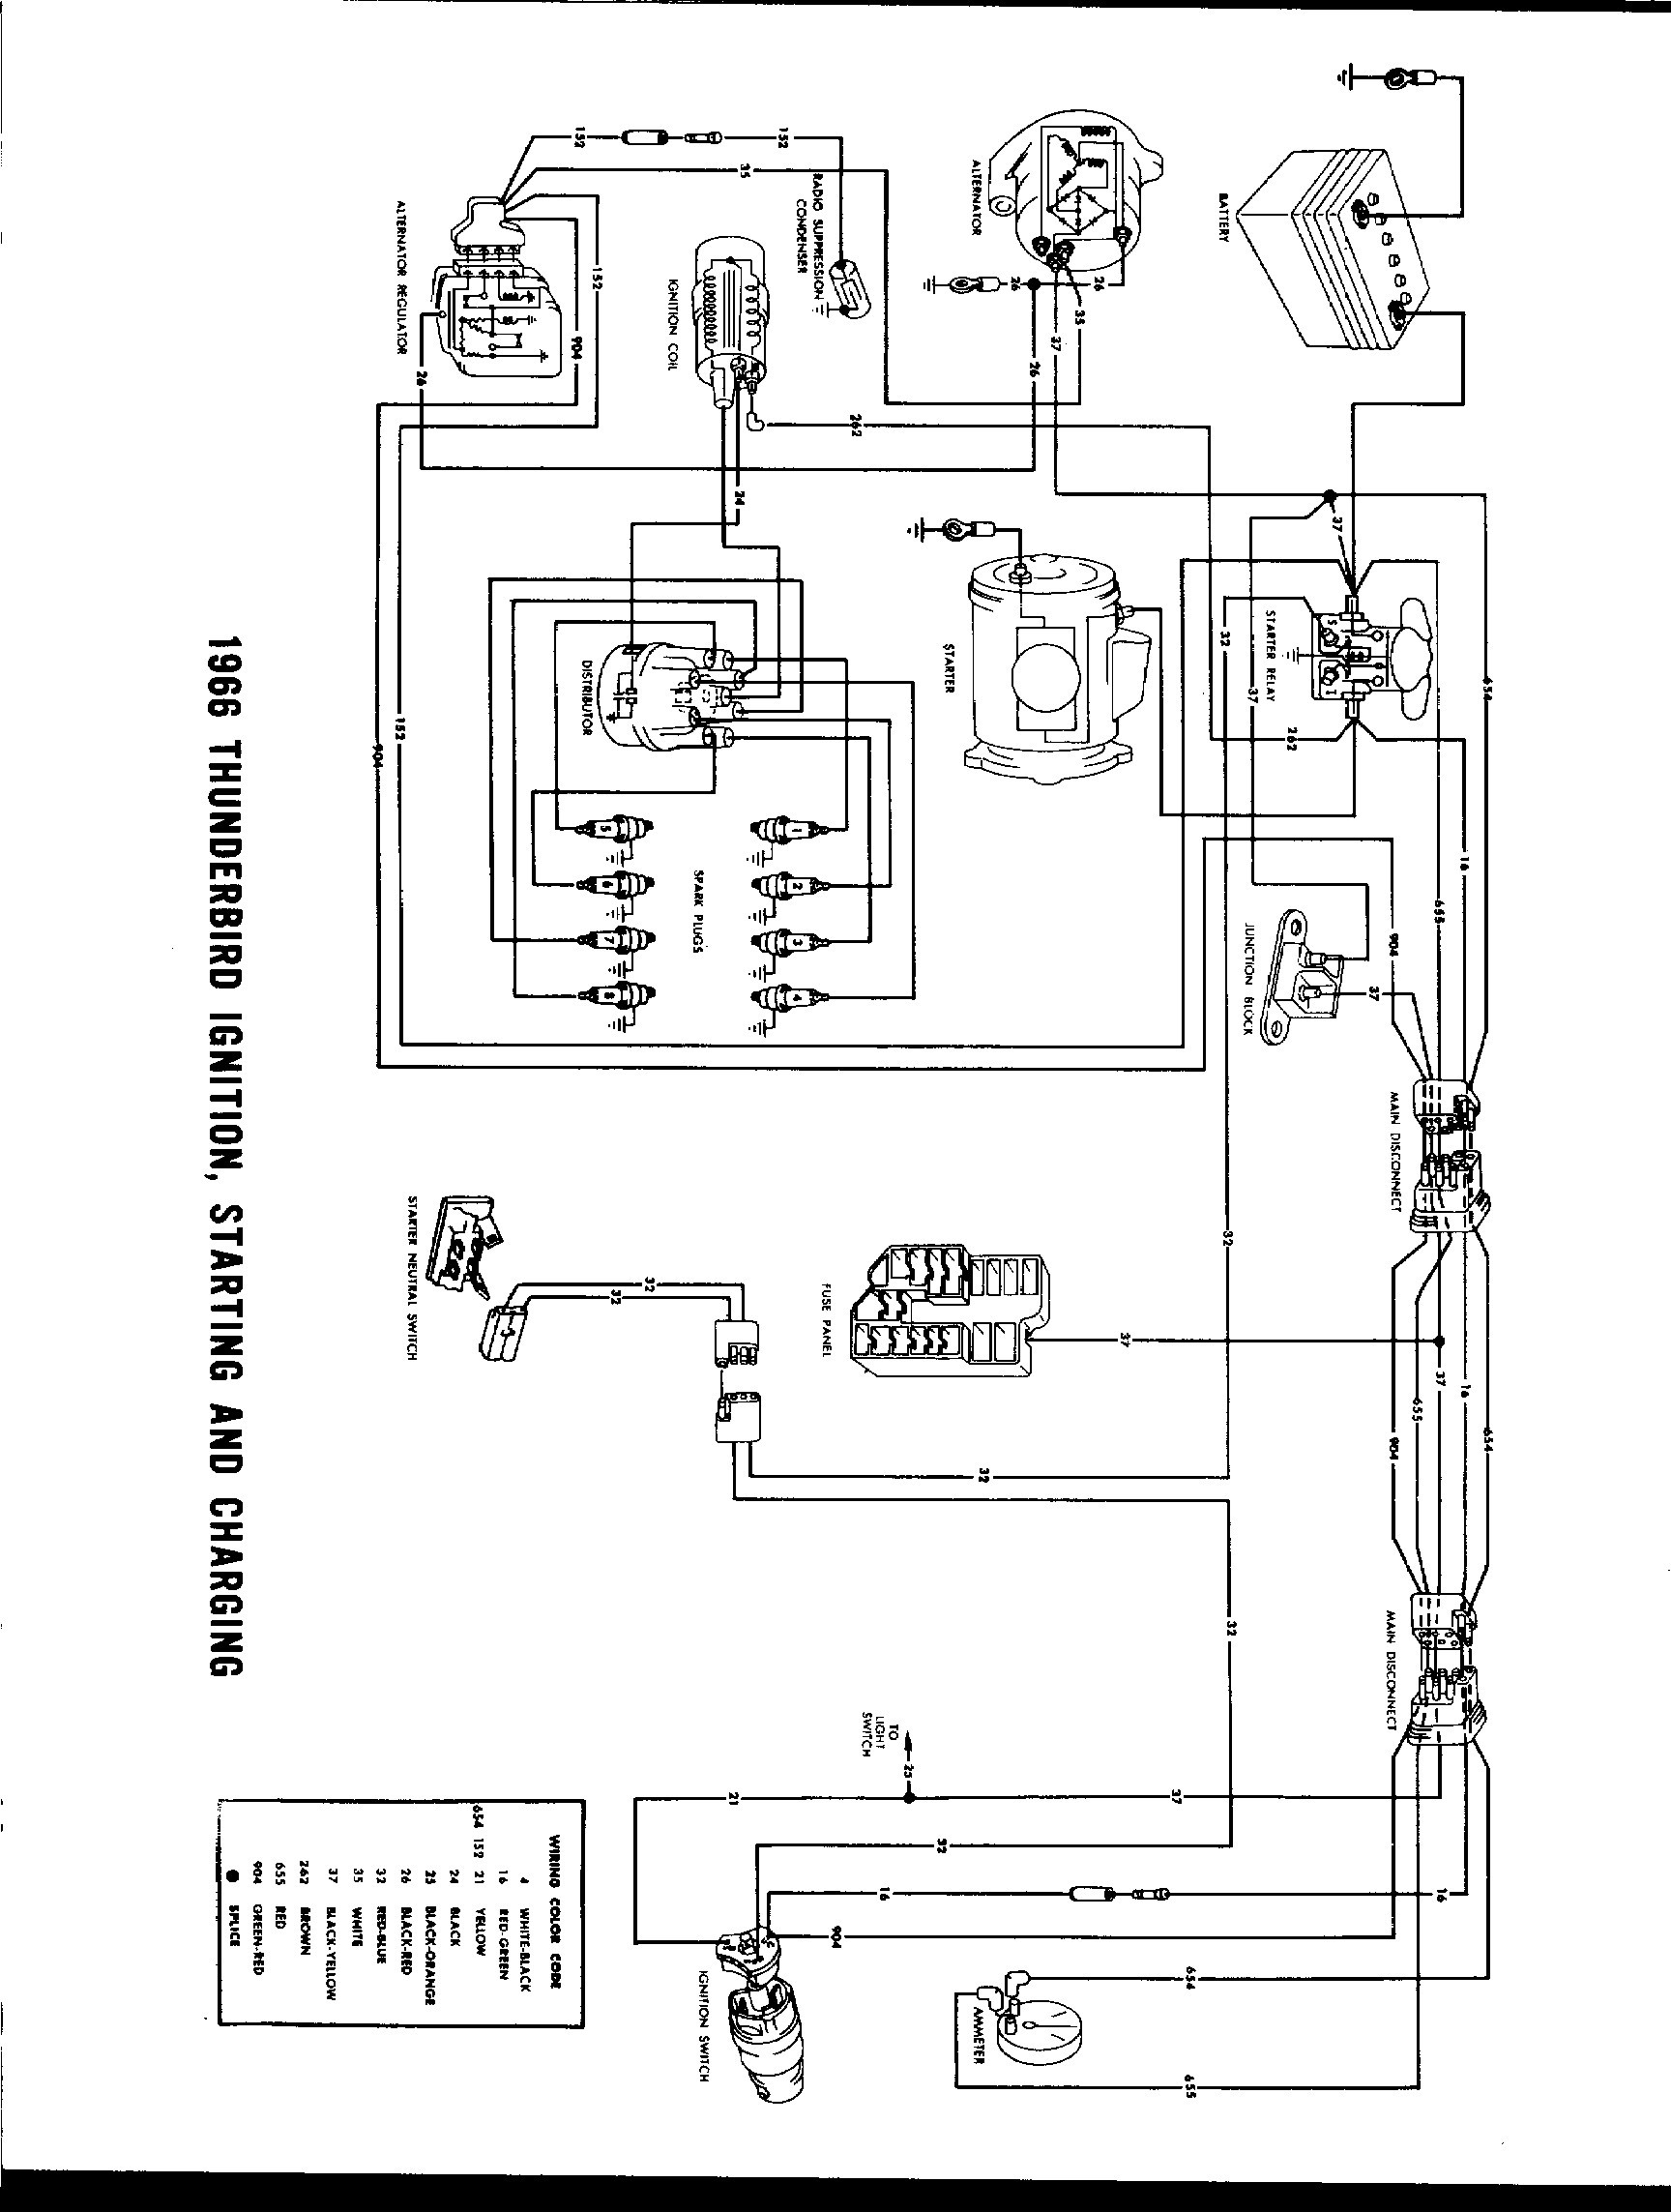 12 Volt Hydraulic Pump Wiring Diagram My Lovely Elegant Emergency Door